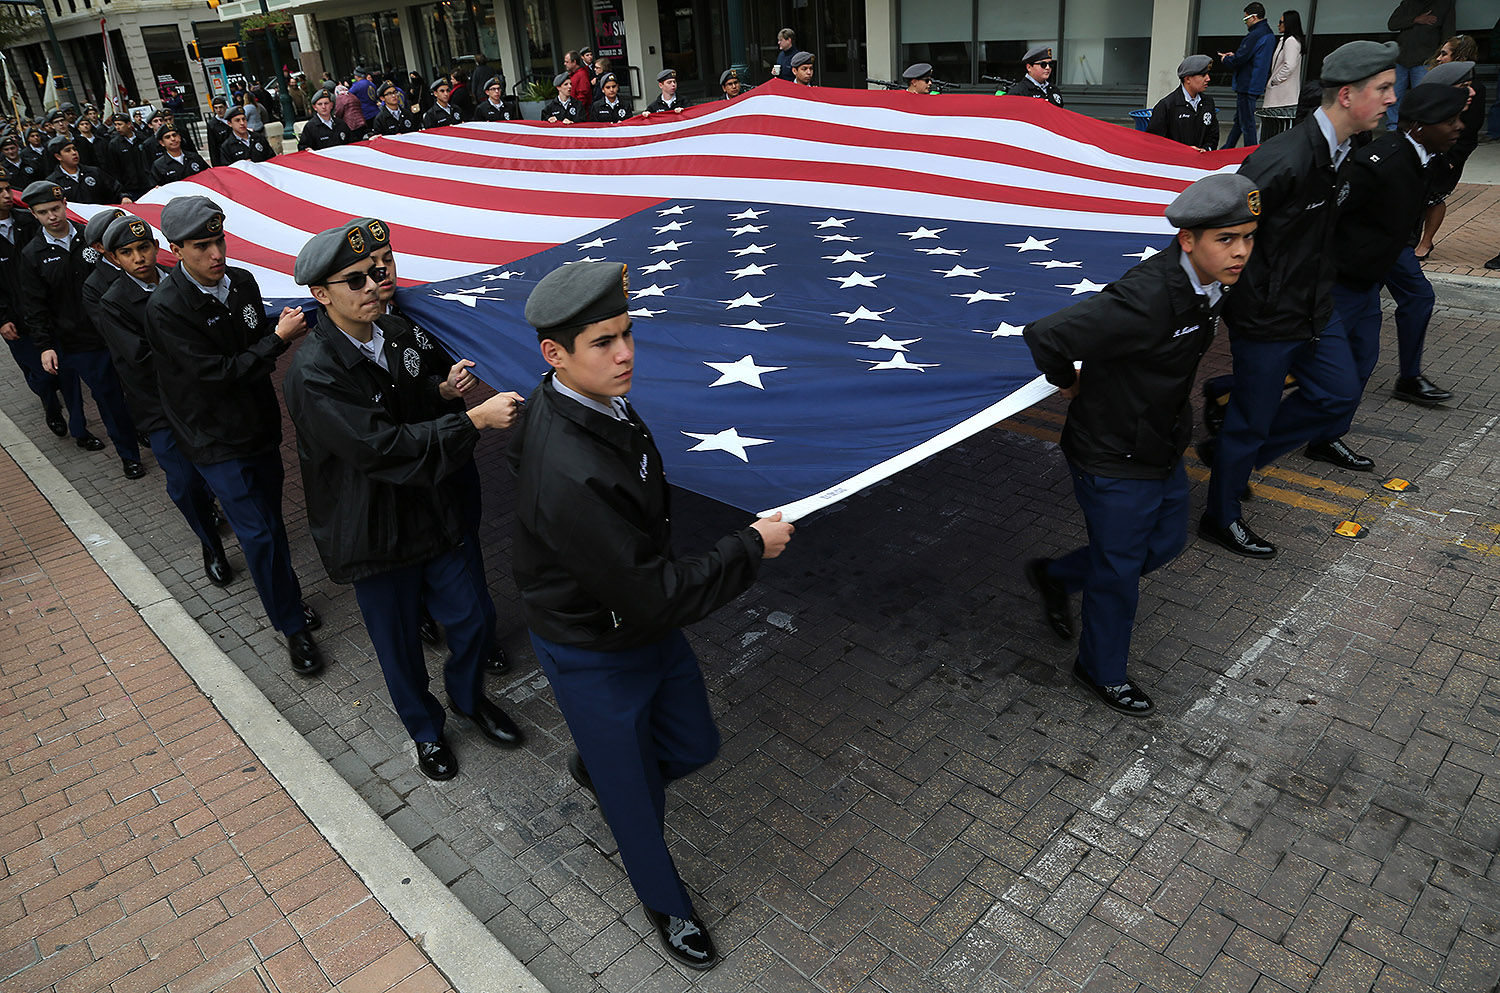 Veterans Day events - San Antonio Express-News